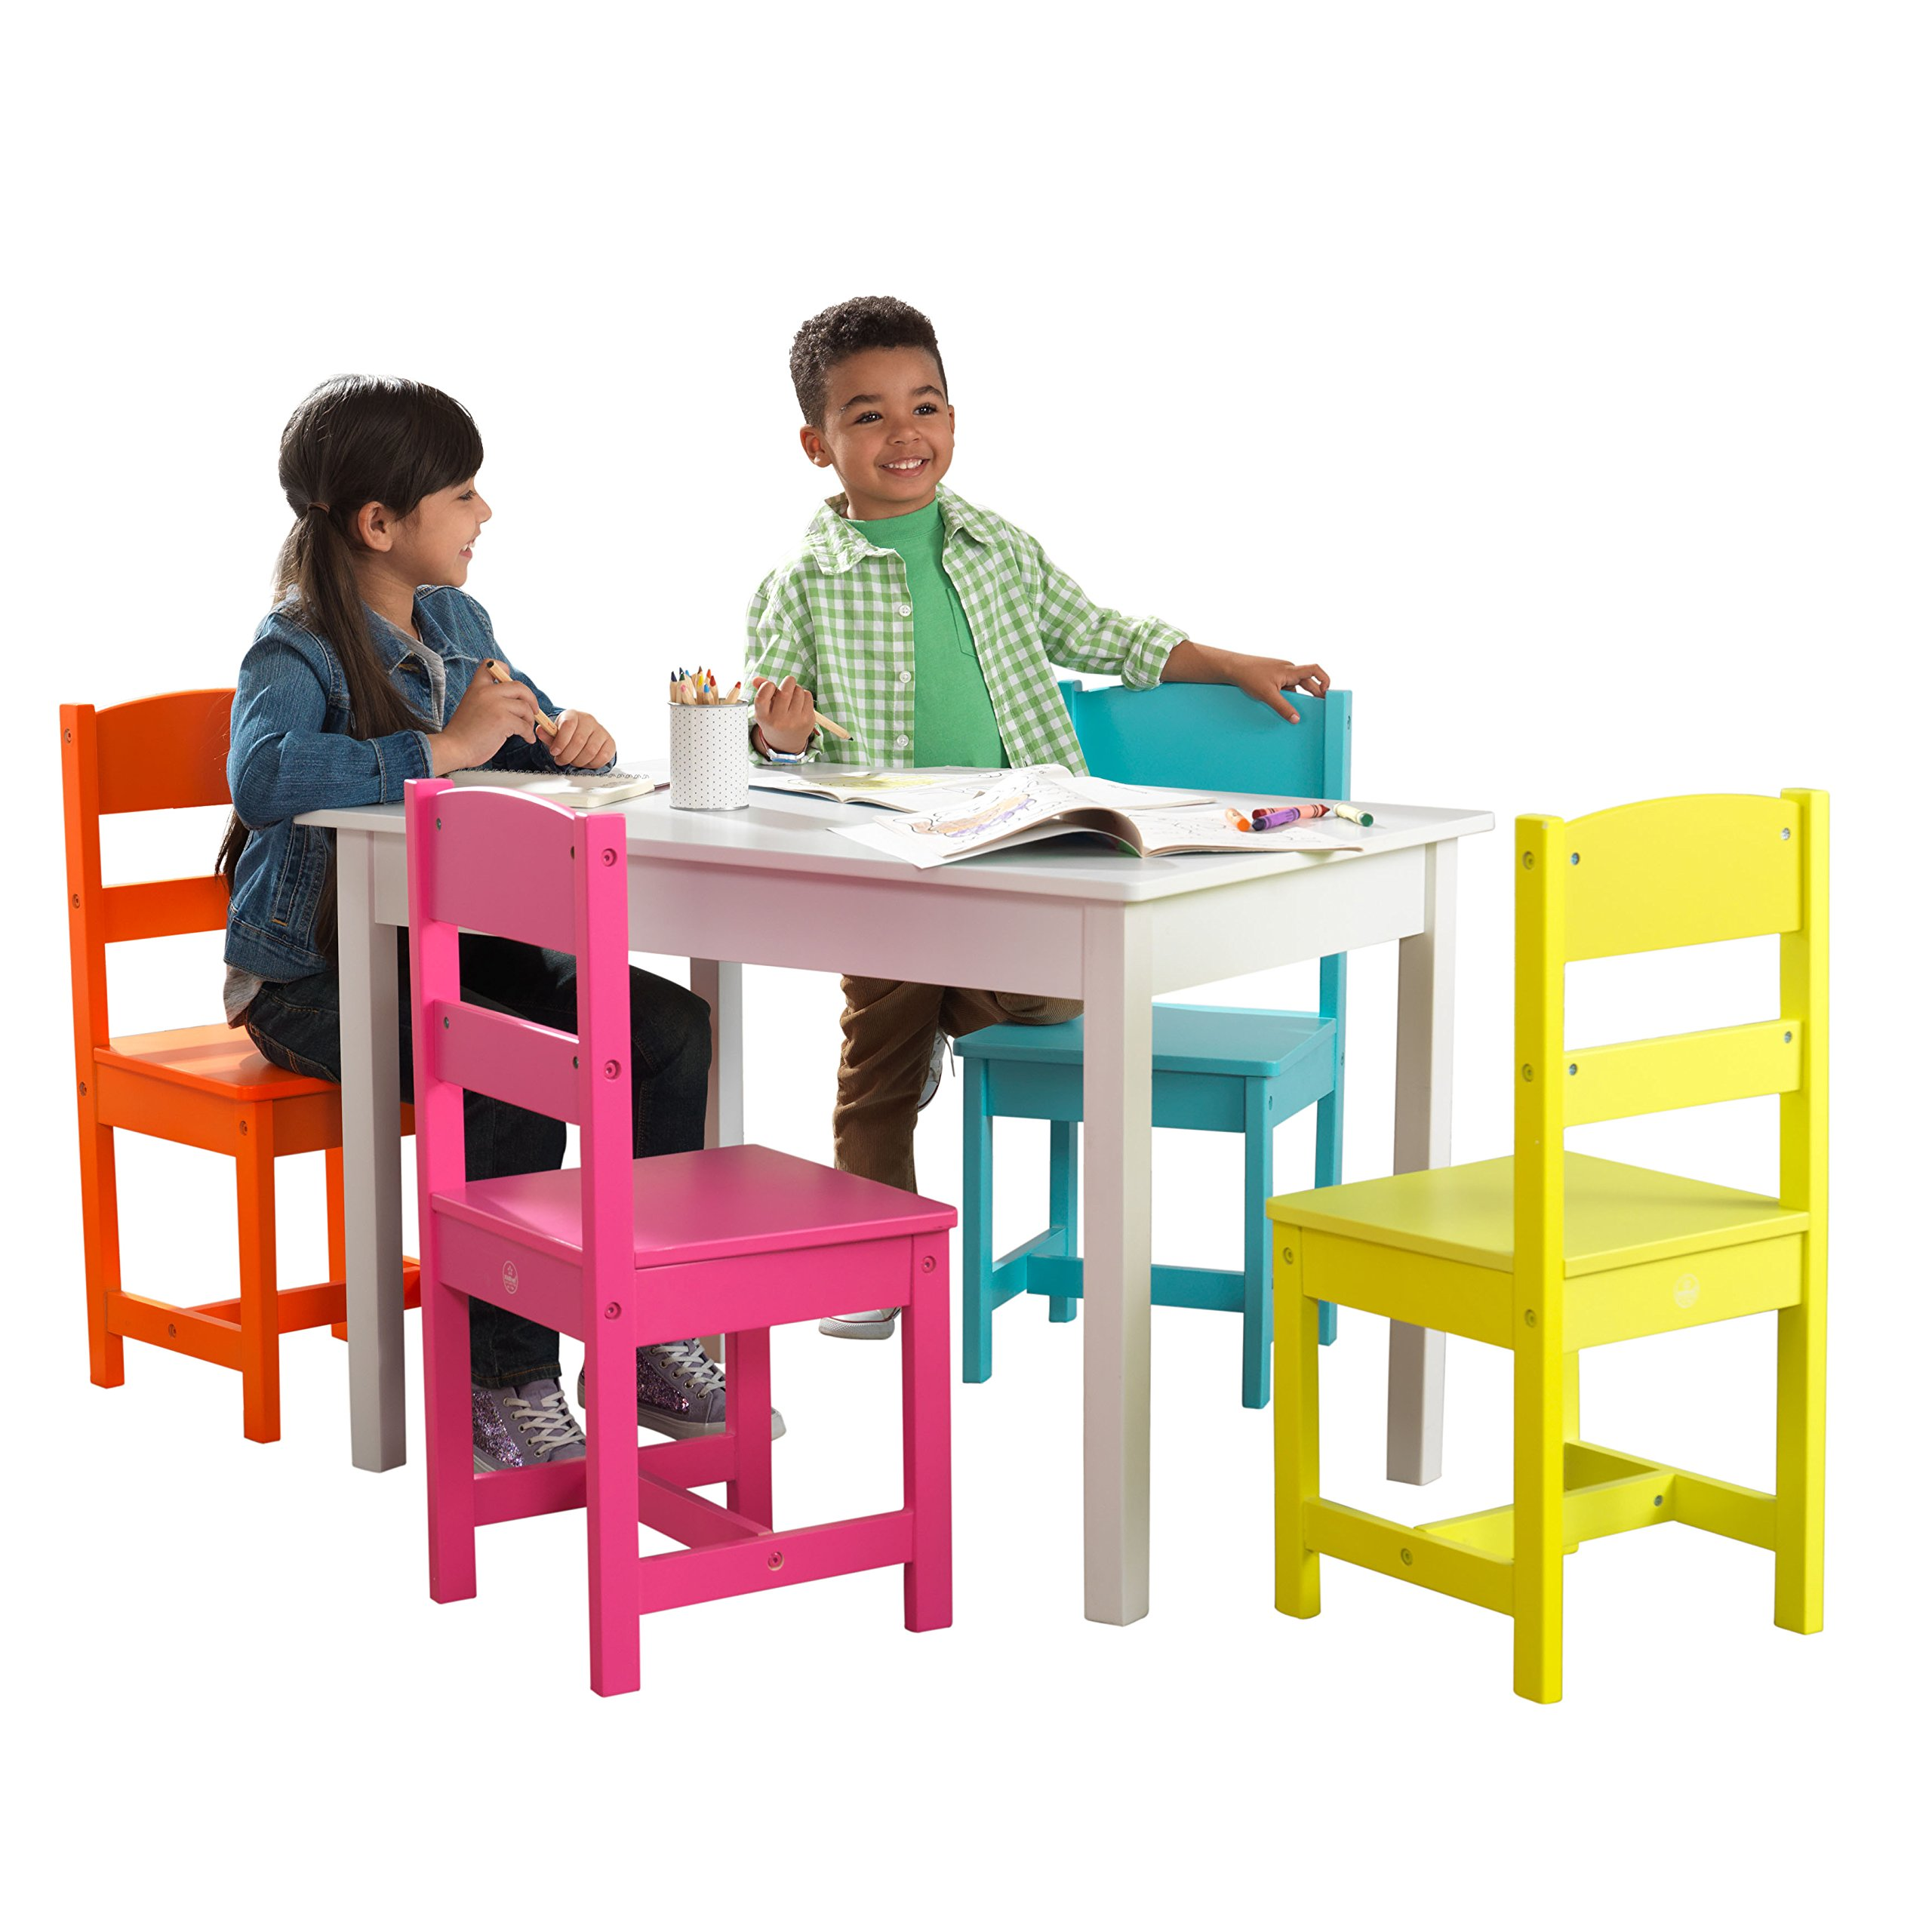 Highlighter Table & 4 Chair Set by ShamBo